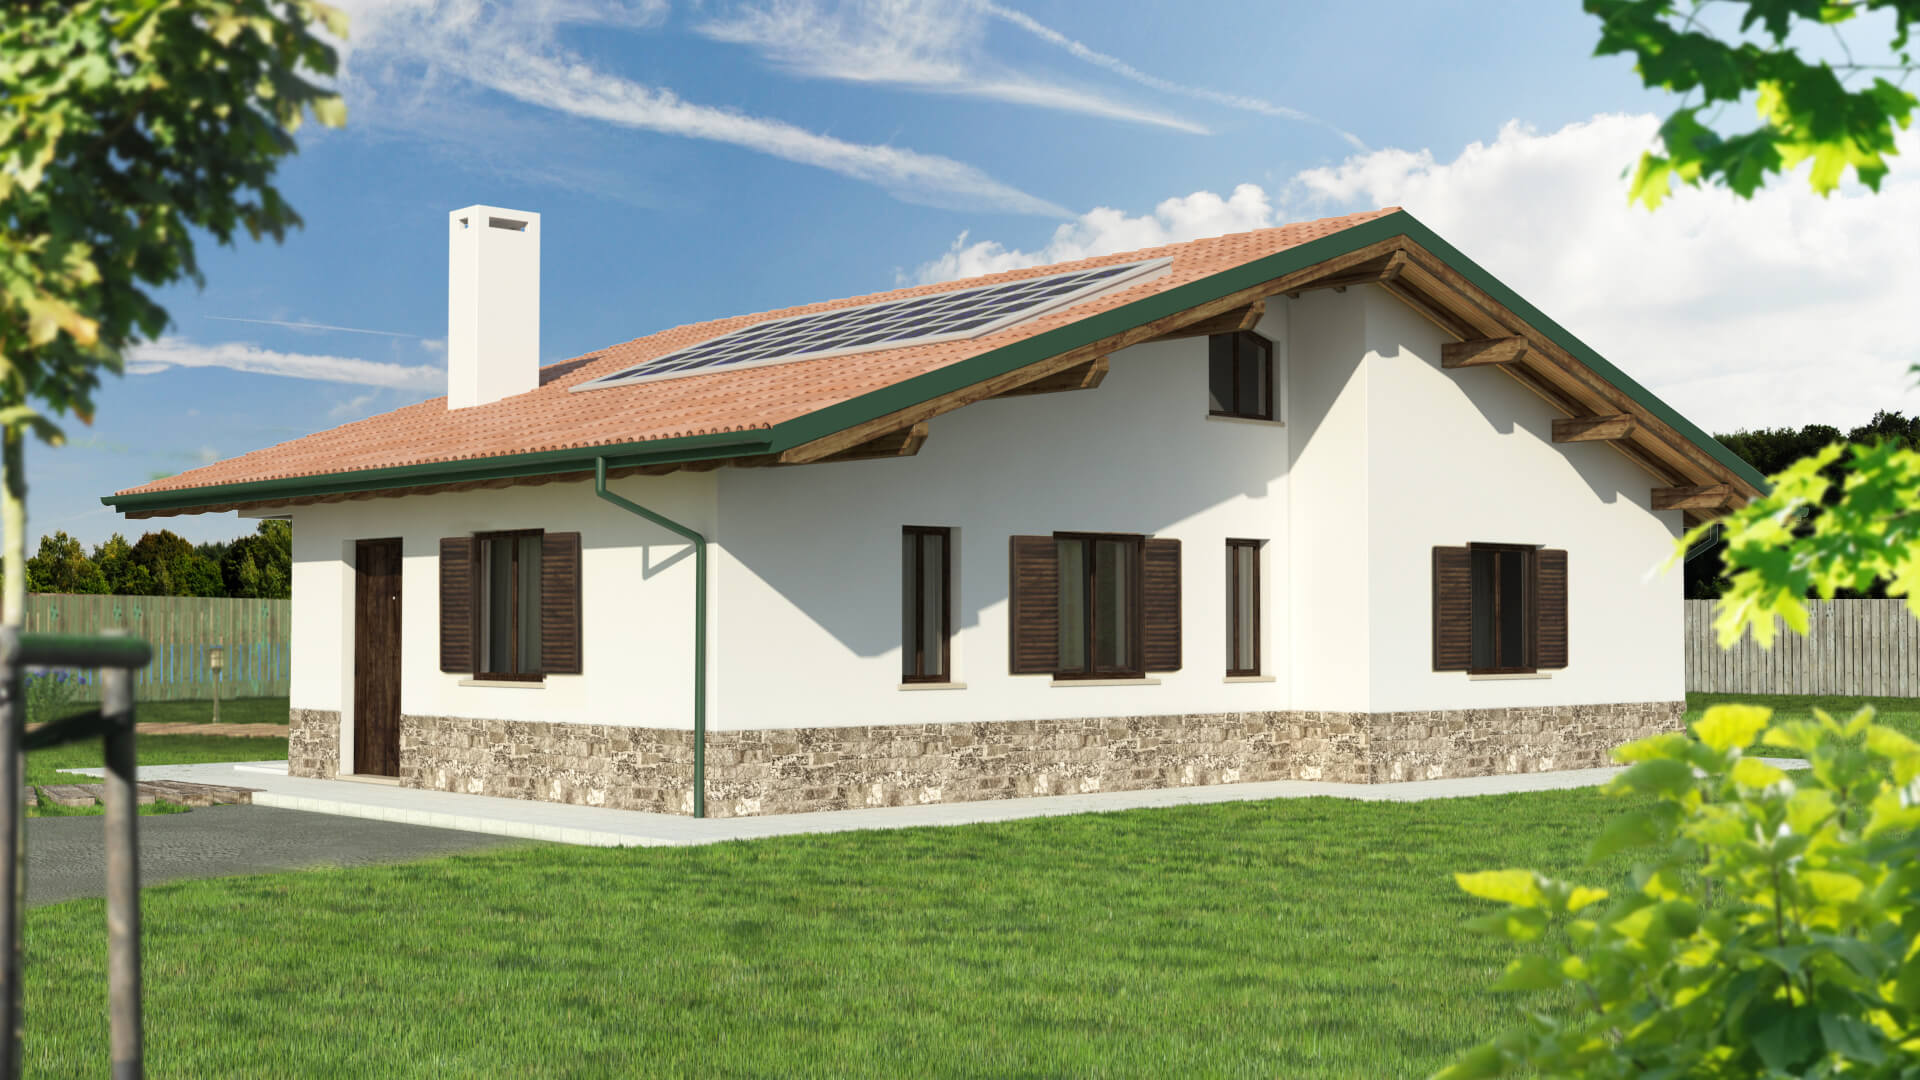 Casa in legno monopiano urb16 urban green for Piani casa cottage con soppalco